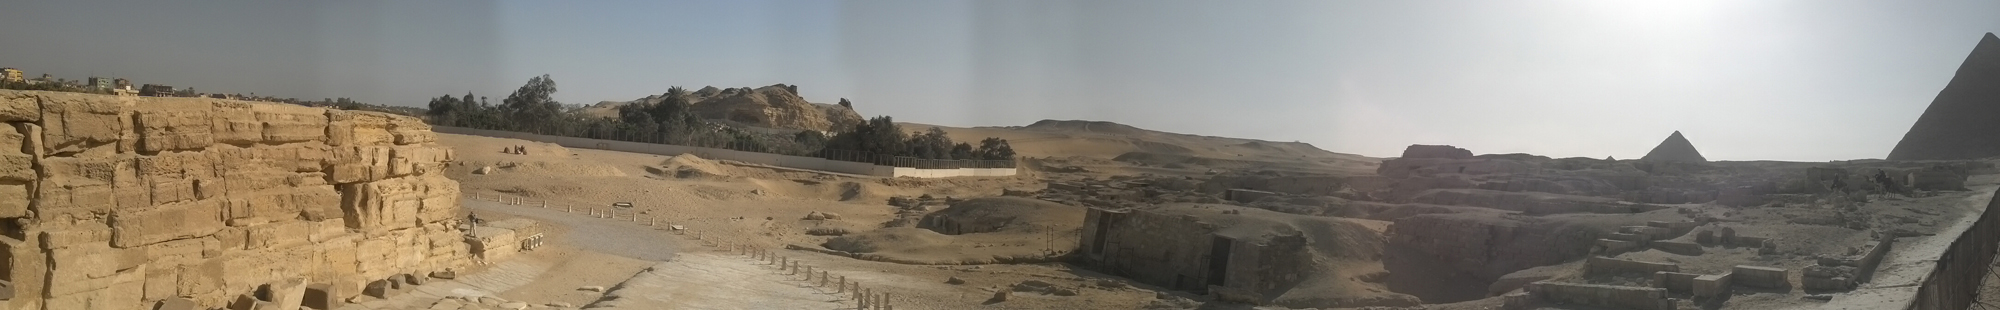 Khafre Pyramid Complex, Central Field: Site: Giza; View: Khafre Valley Temple, Central Field